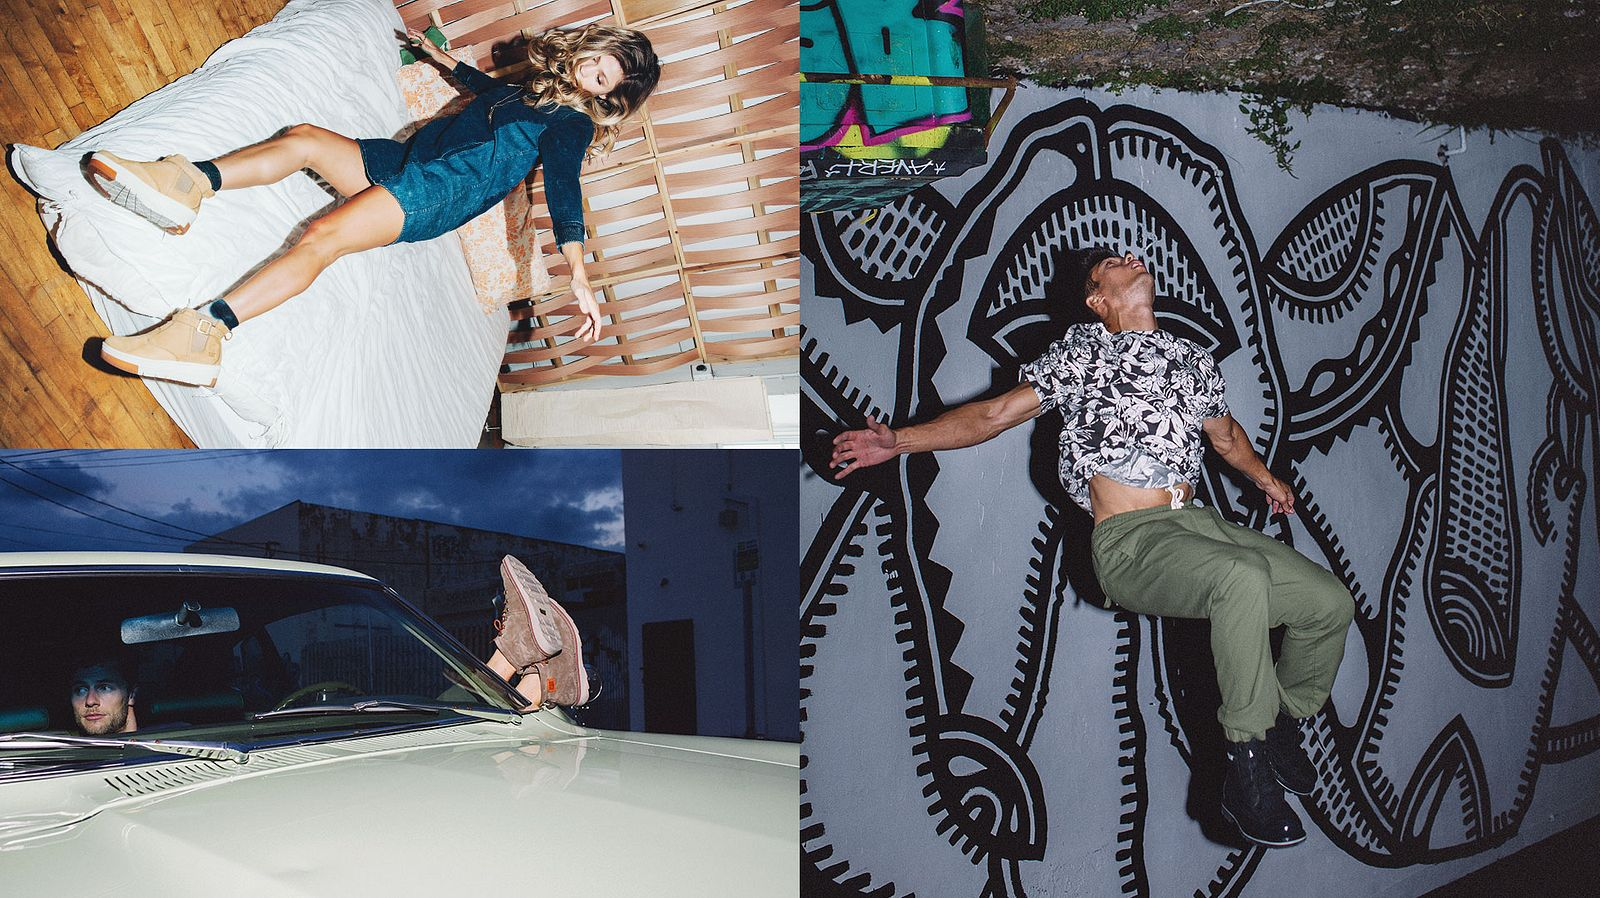 Cat Footwear Photoshoot Fashion Spread – images by Someoddpilot